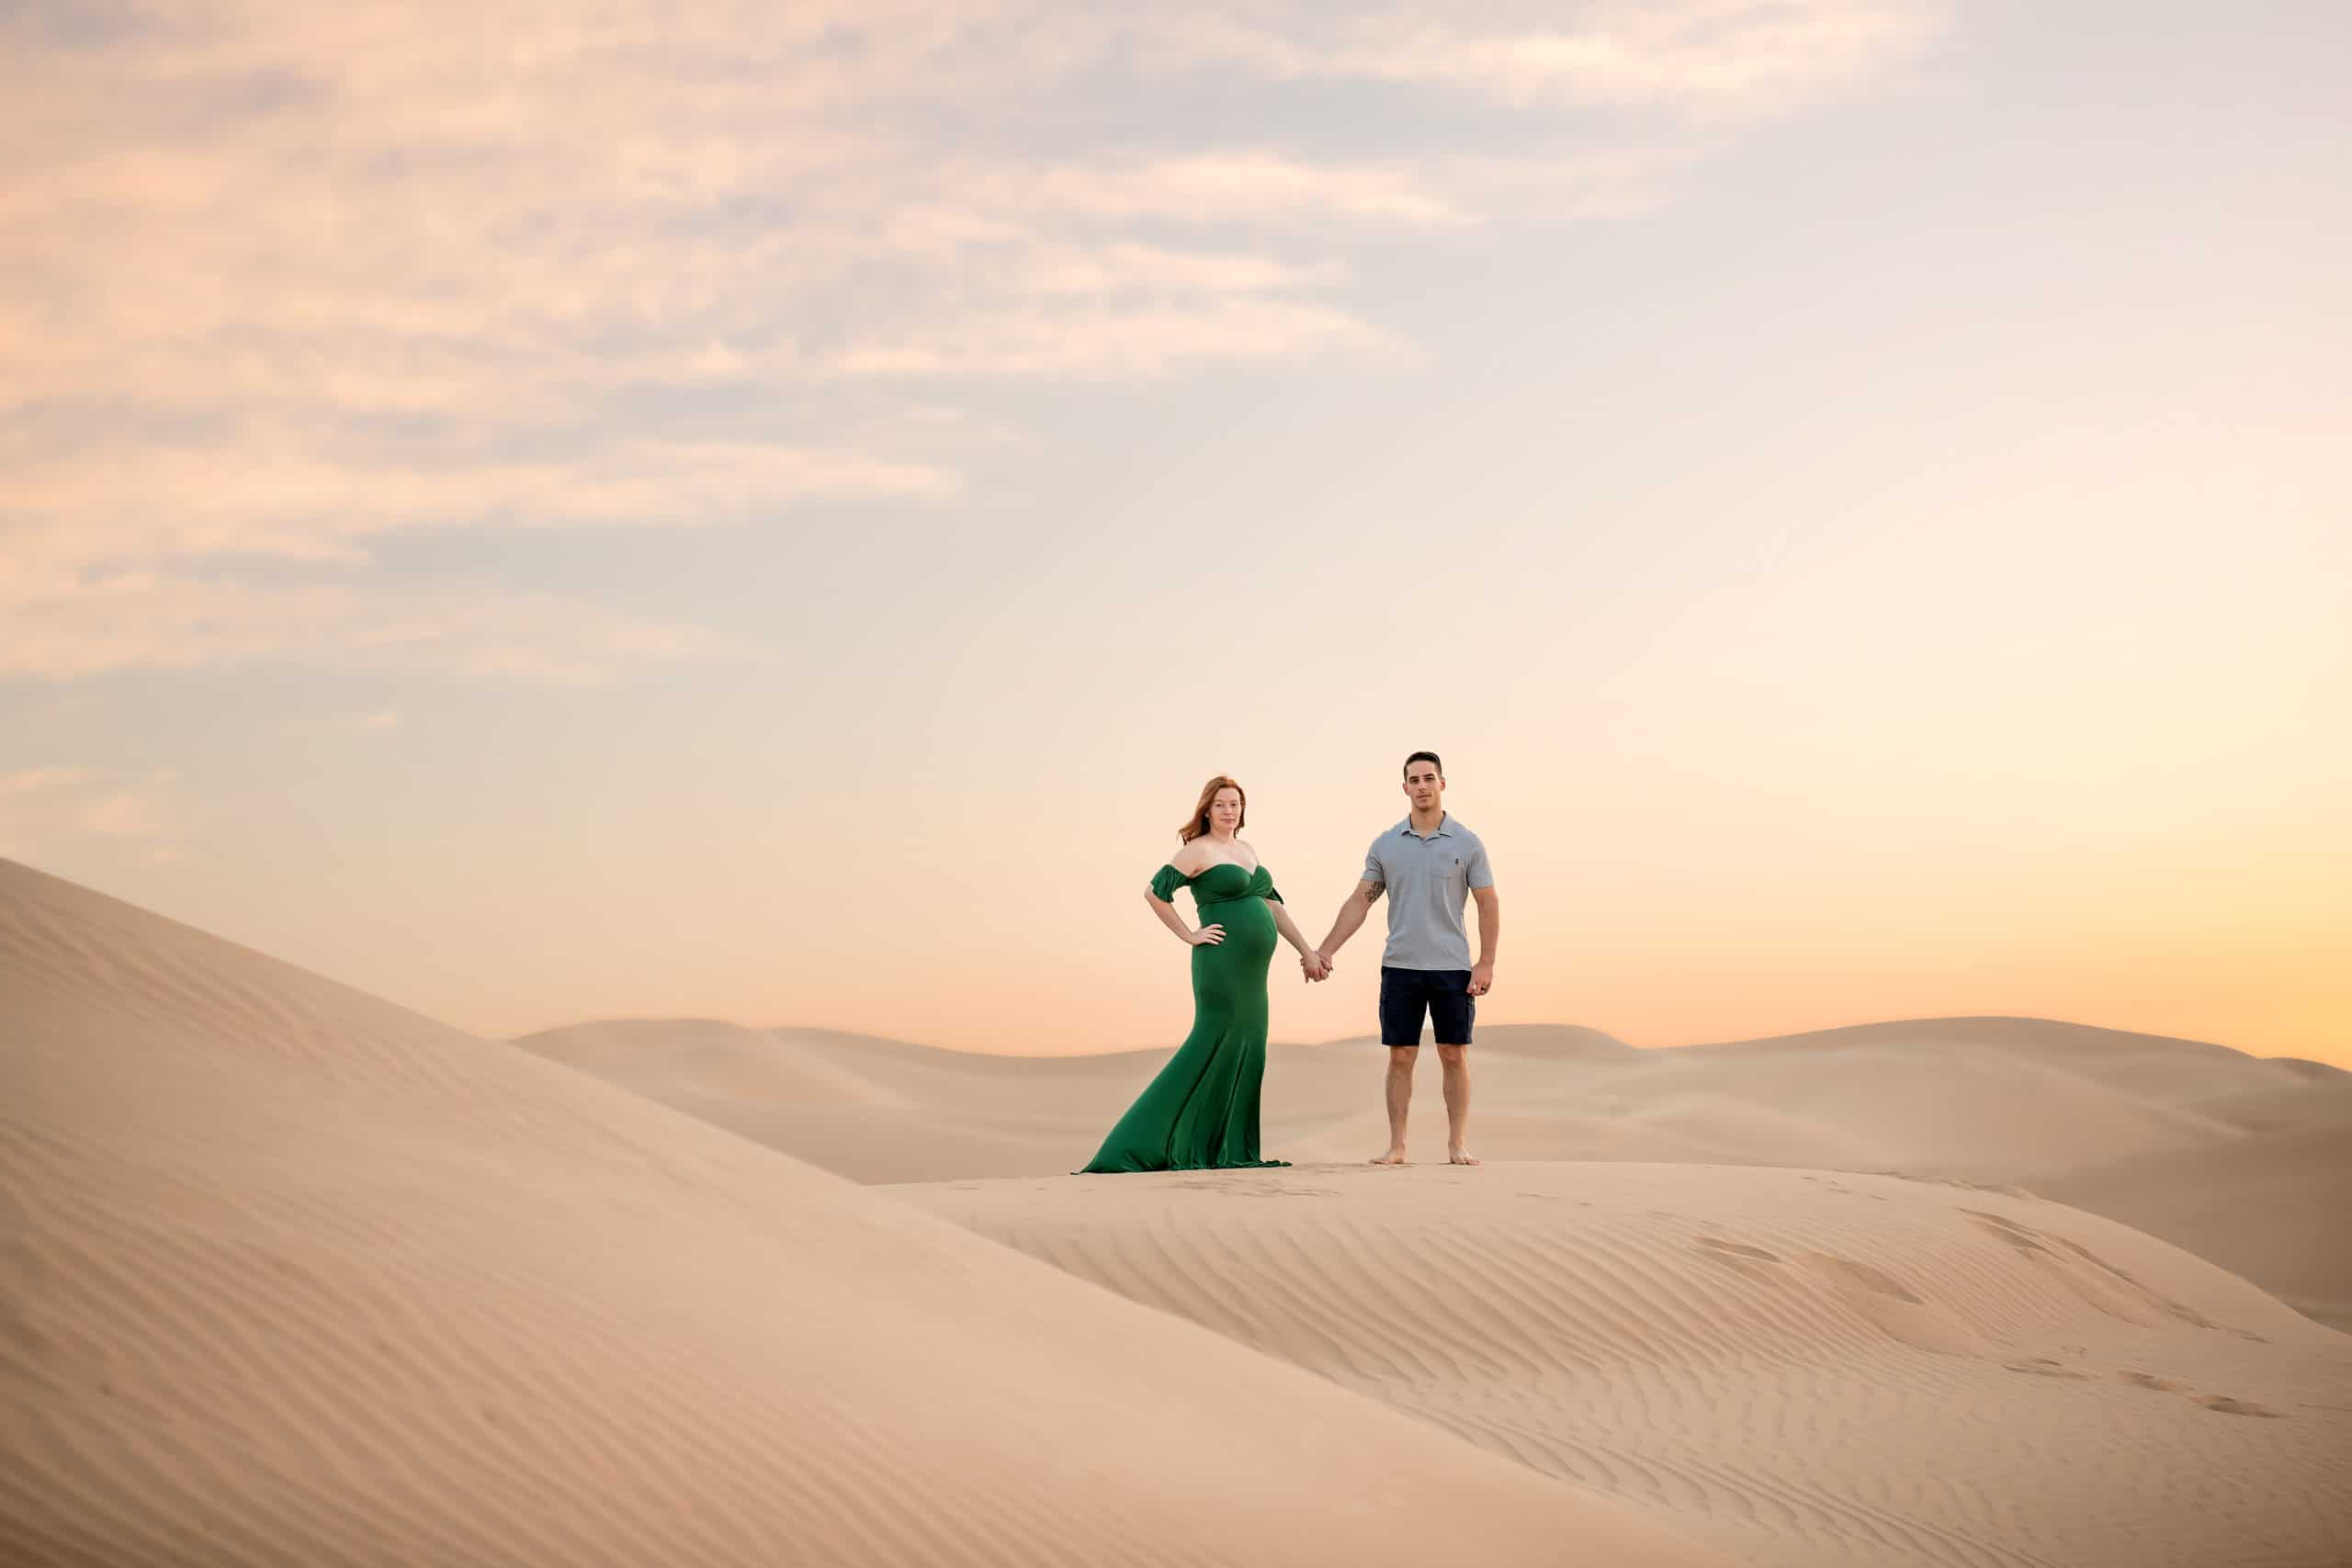 Imperial Sand Dunes Photographer